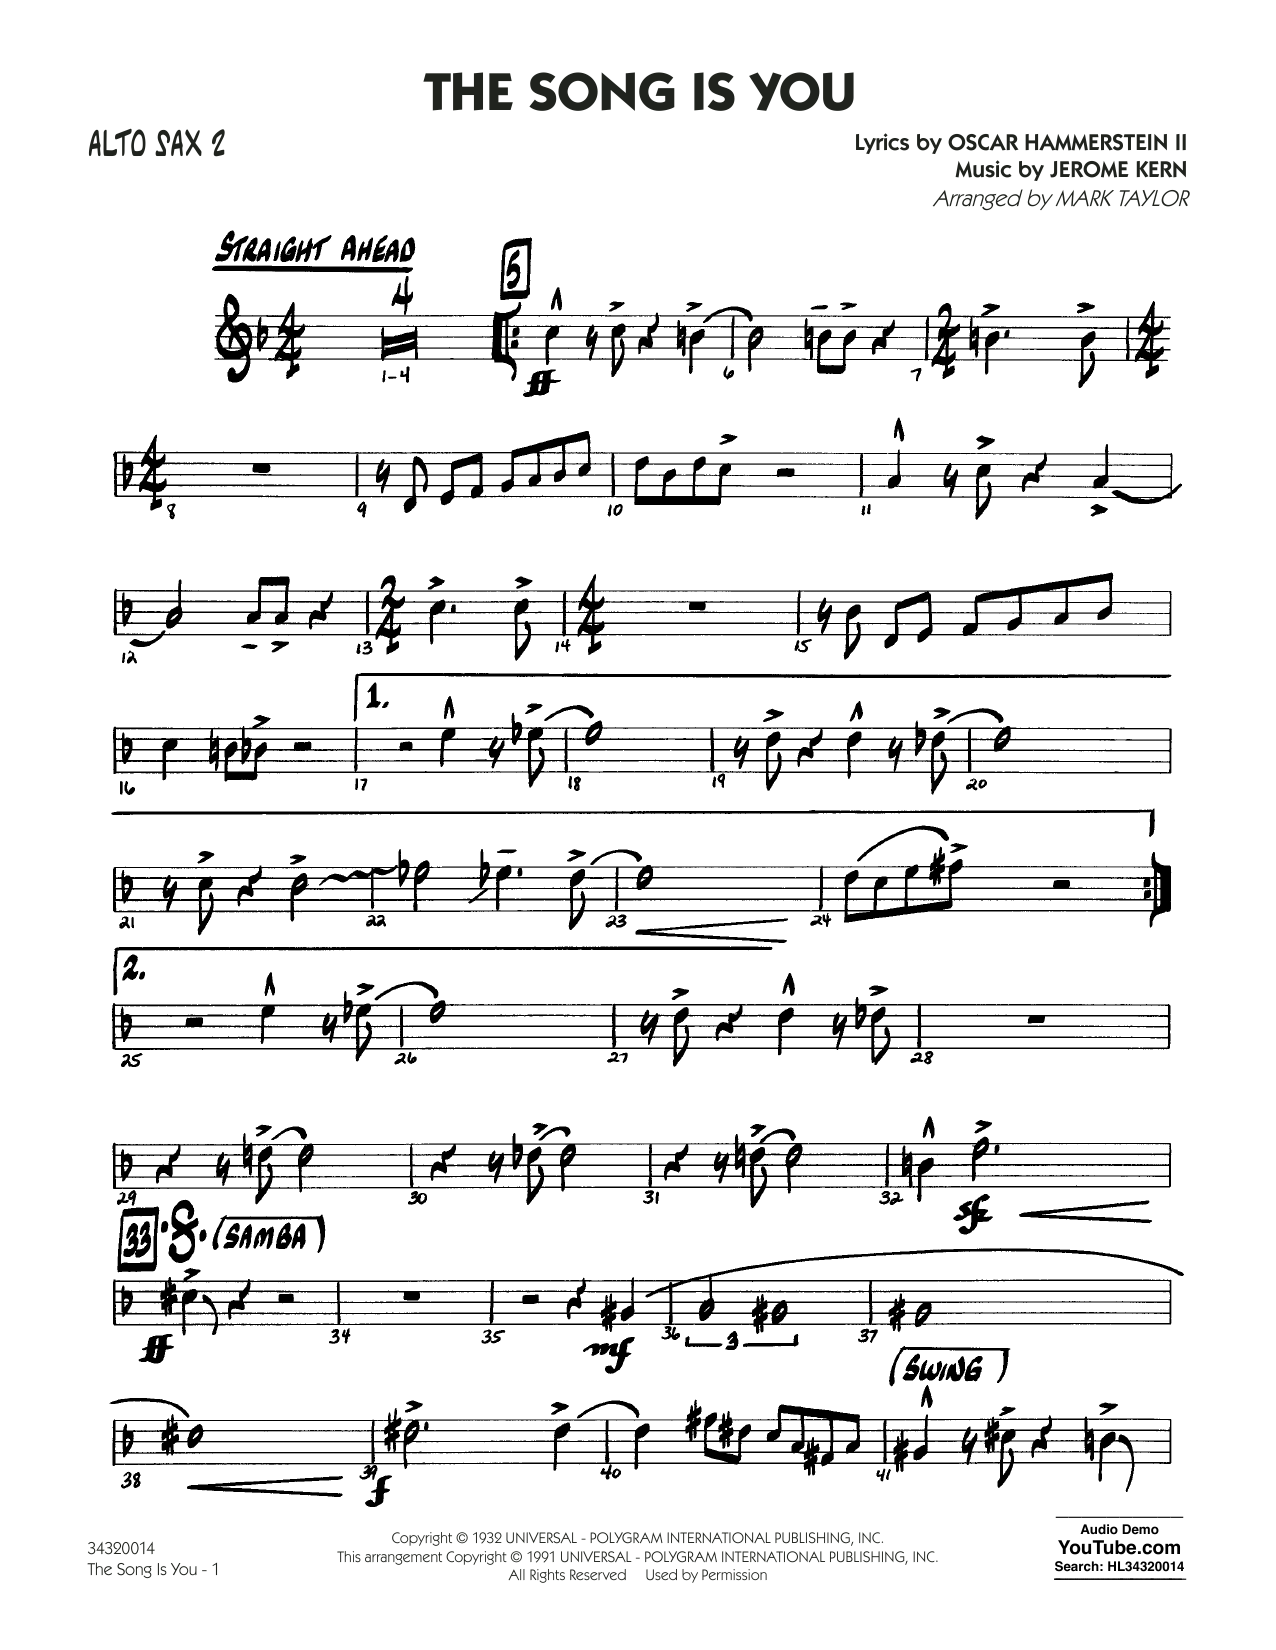 Mark Taylor The Song Is You - Alto Sax 2 sheet music notes and chords. Download Printable PDF.